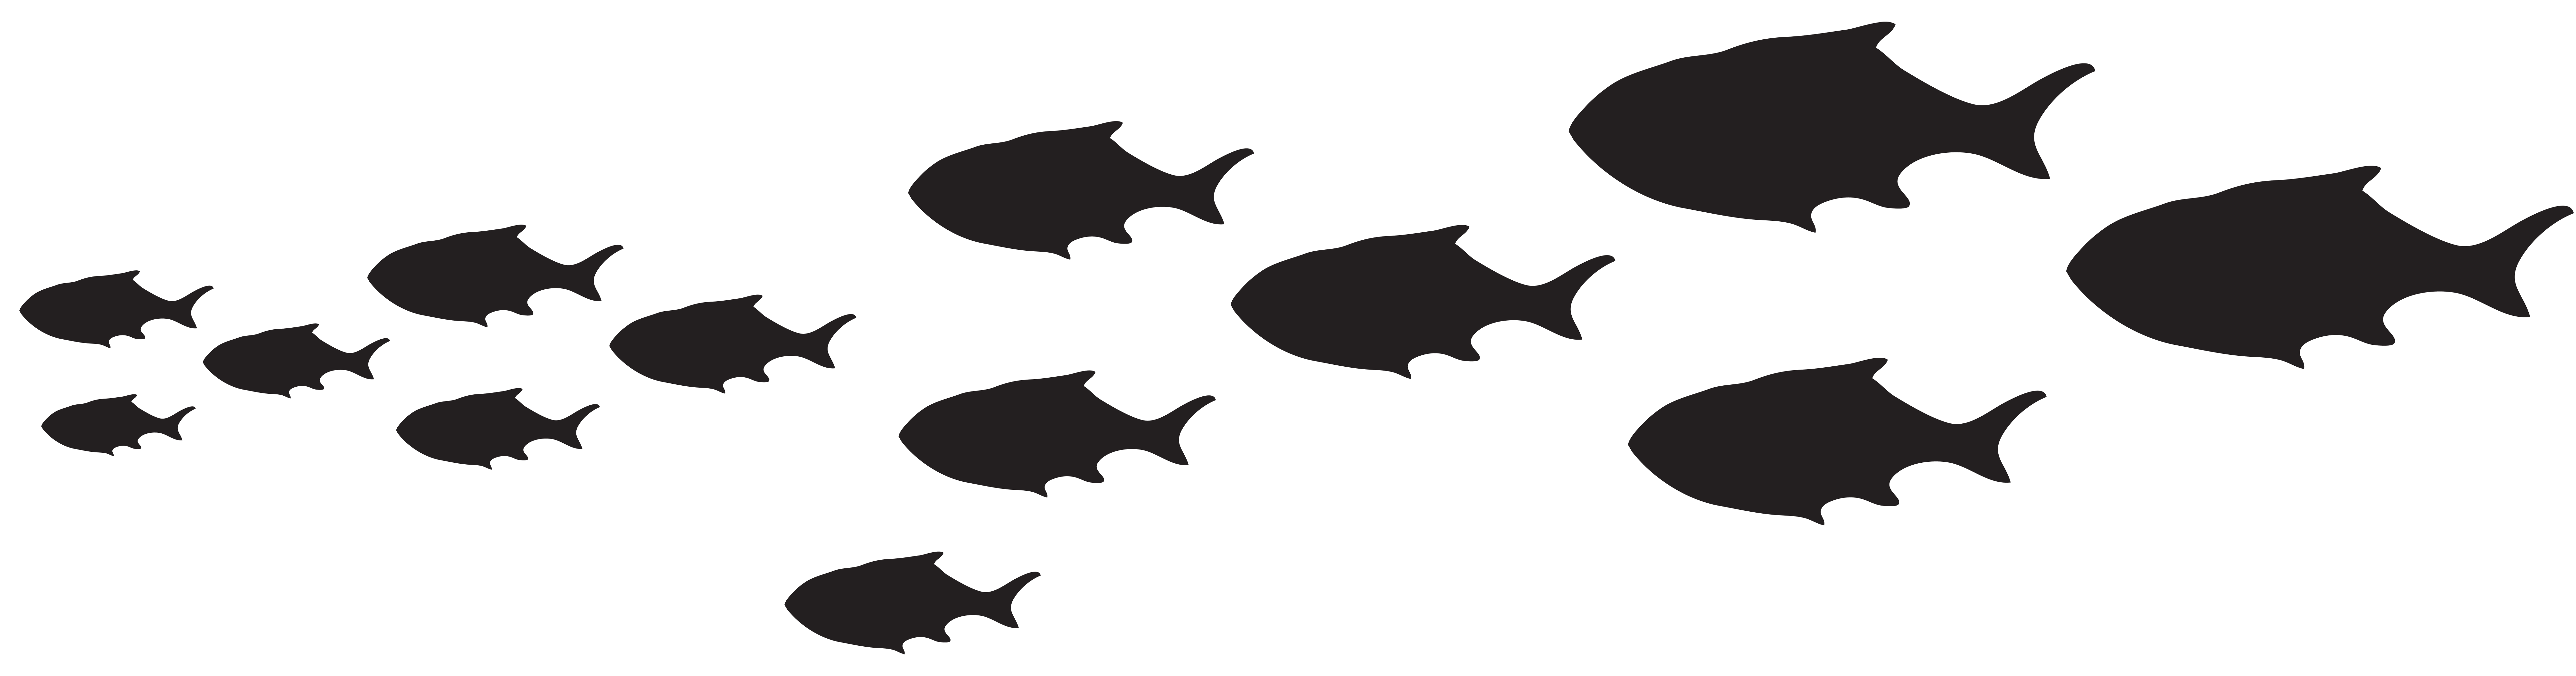 Fish silhouette clip art. Hunting clipart fishing boat